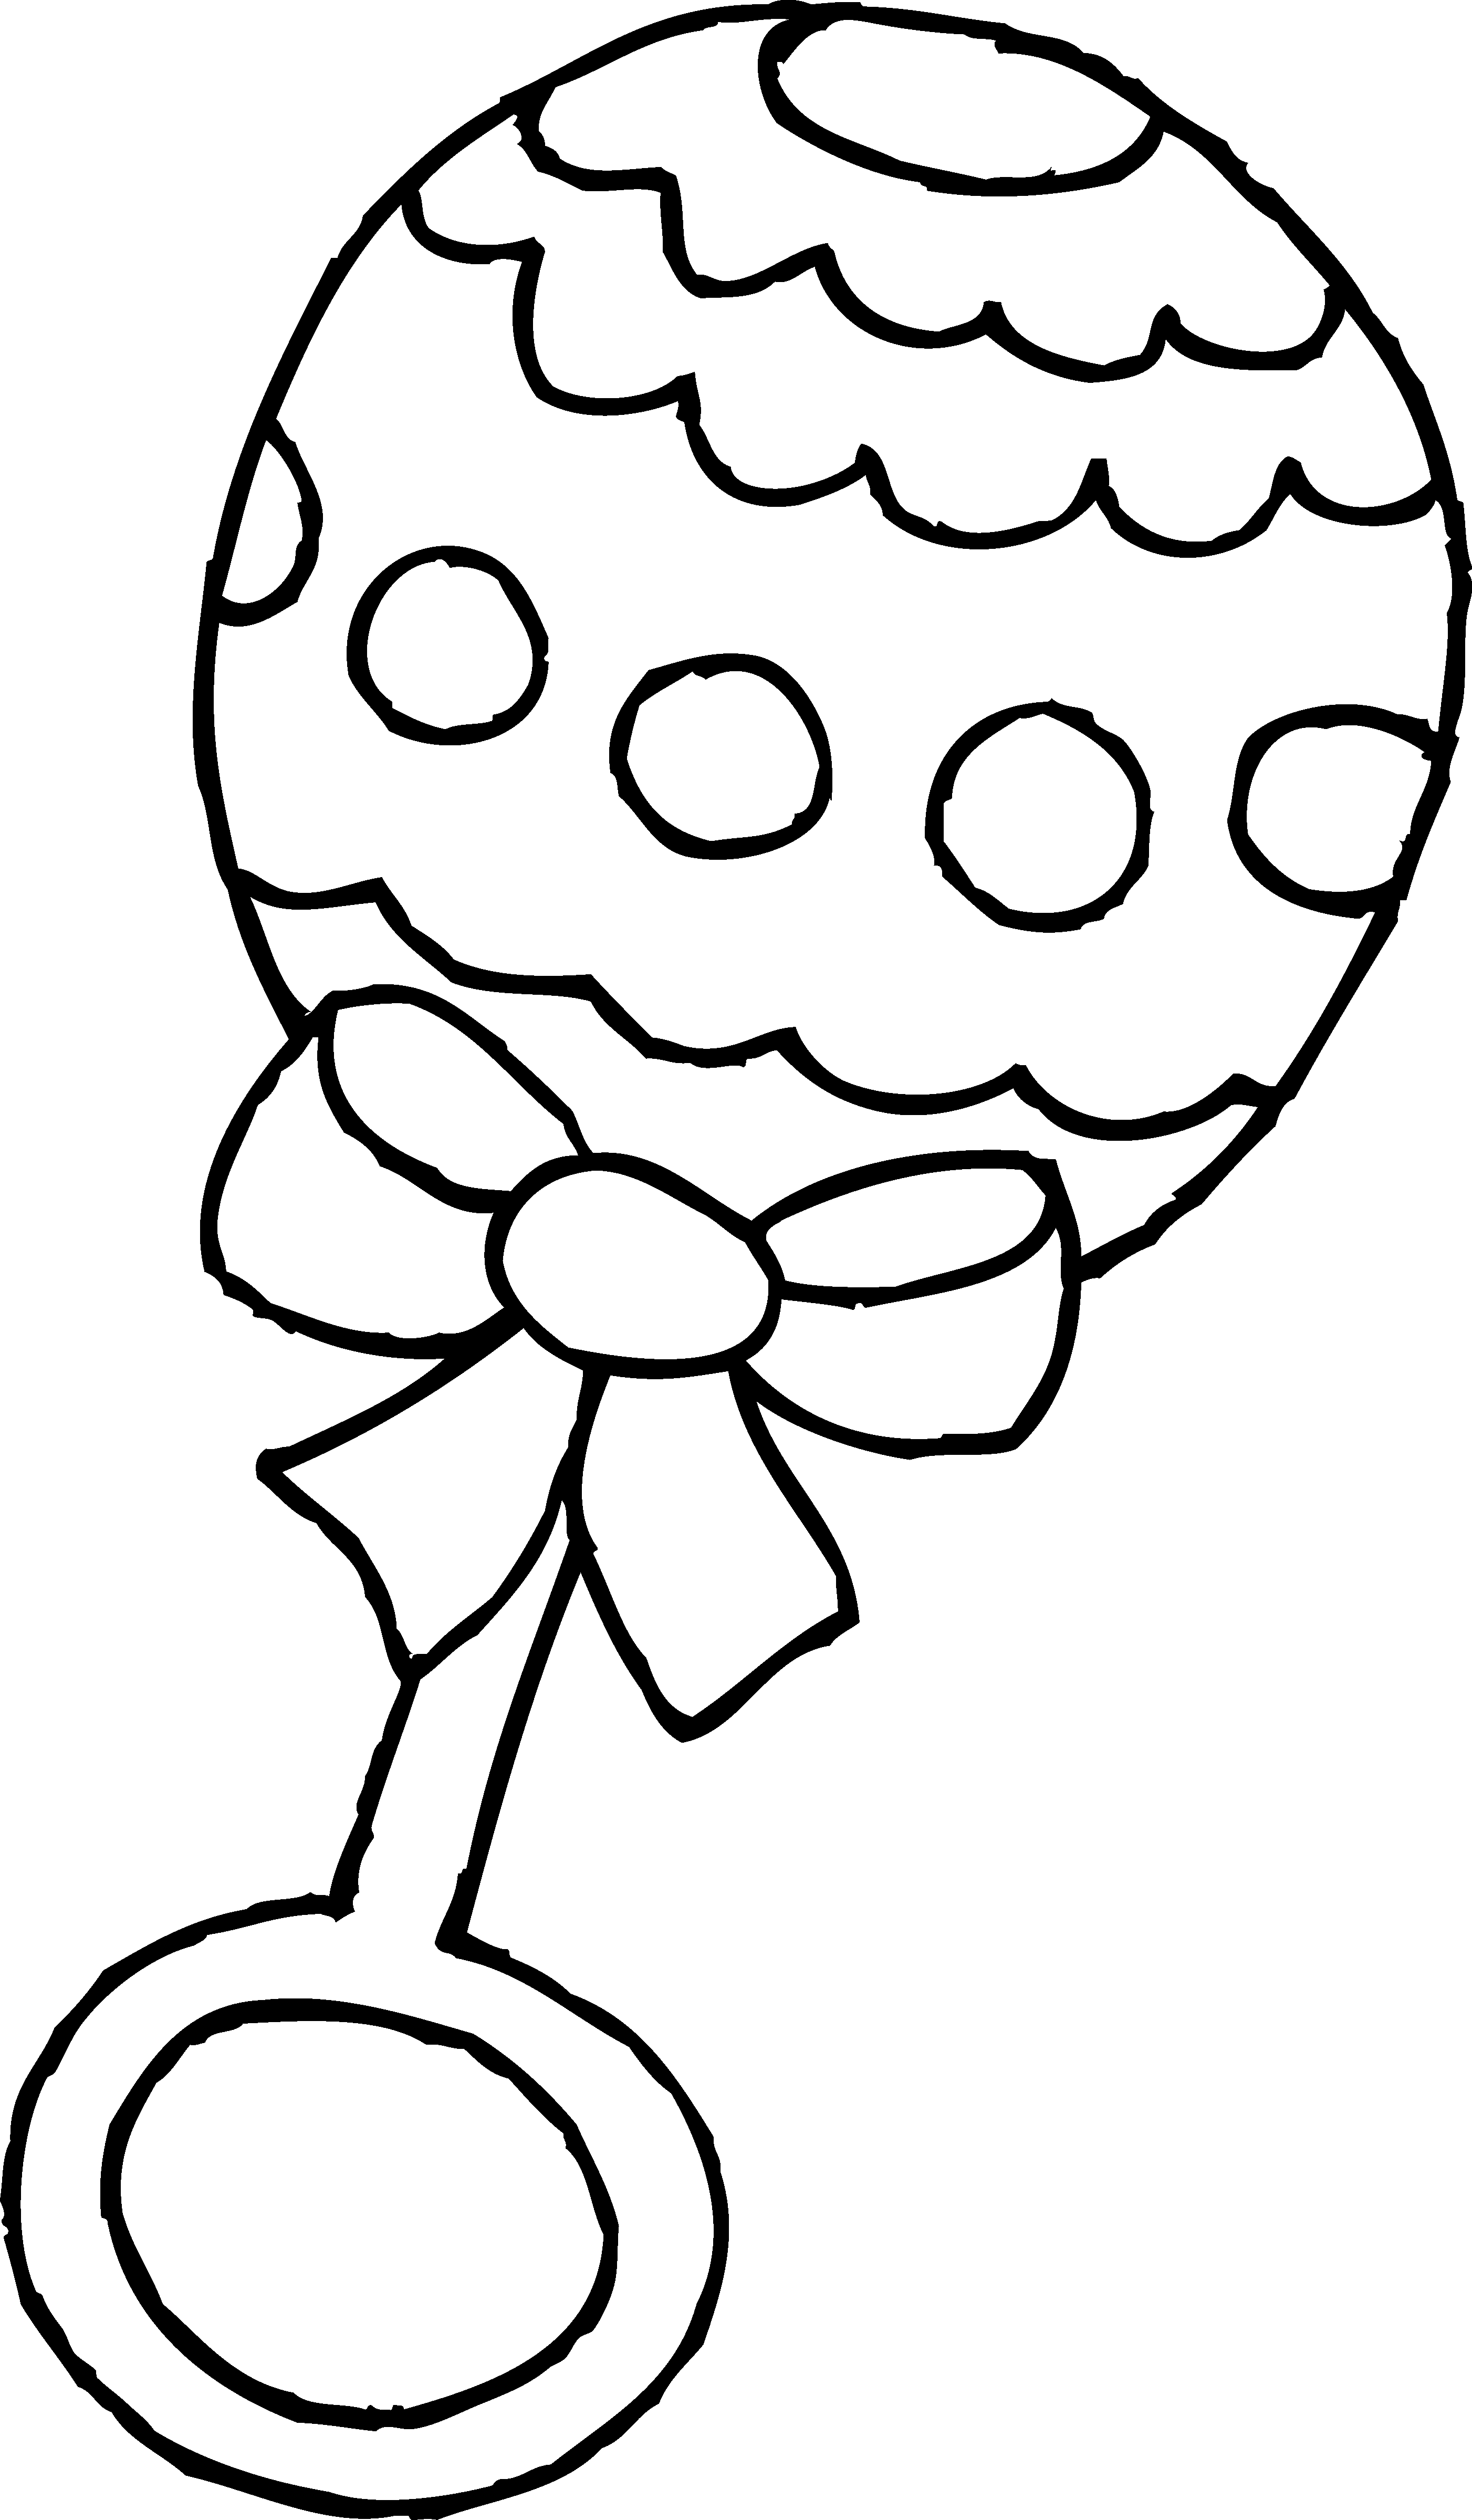 2803x4798 Stork Clipart Baby Toy